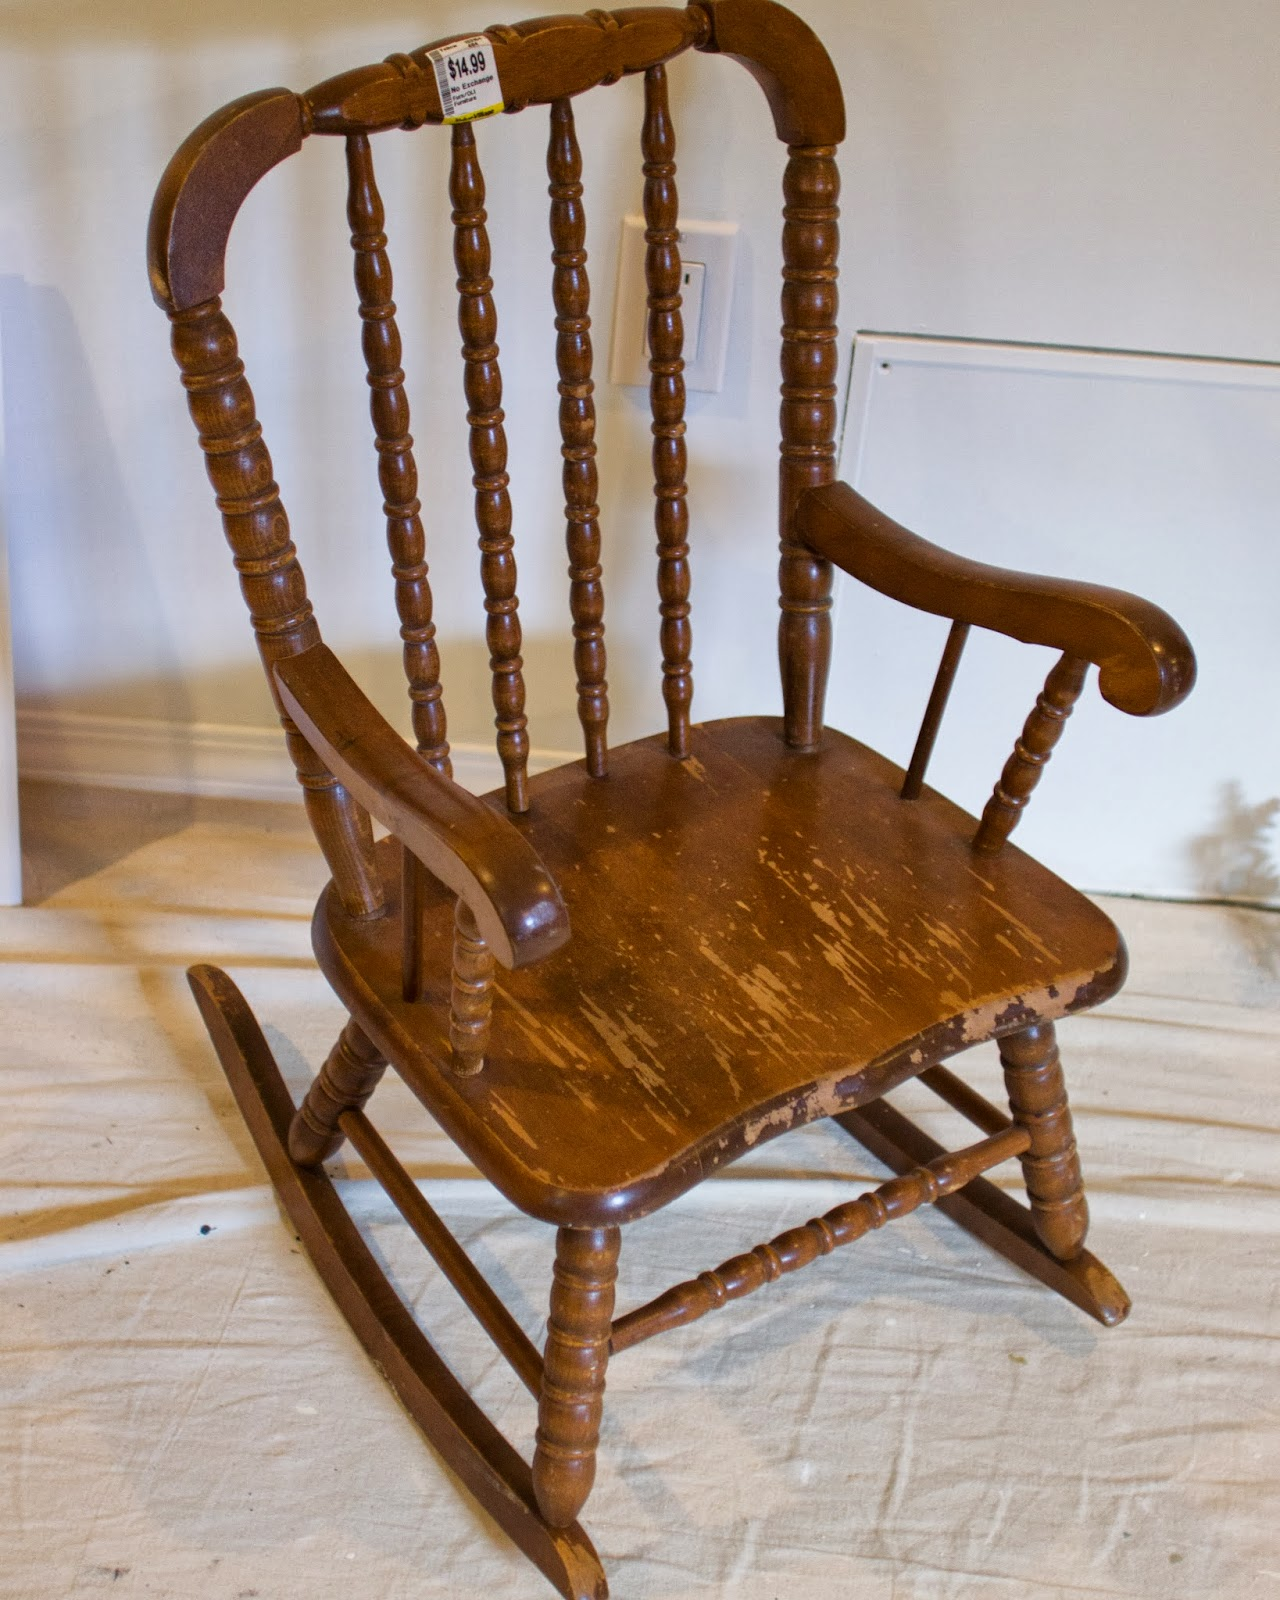 Fine Sweet Tree Furniture Childs Jenny Lind Rocking Chair Unemploymentrelief Wooden Chair Designs For Living Room Unemploymentrelieforg